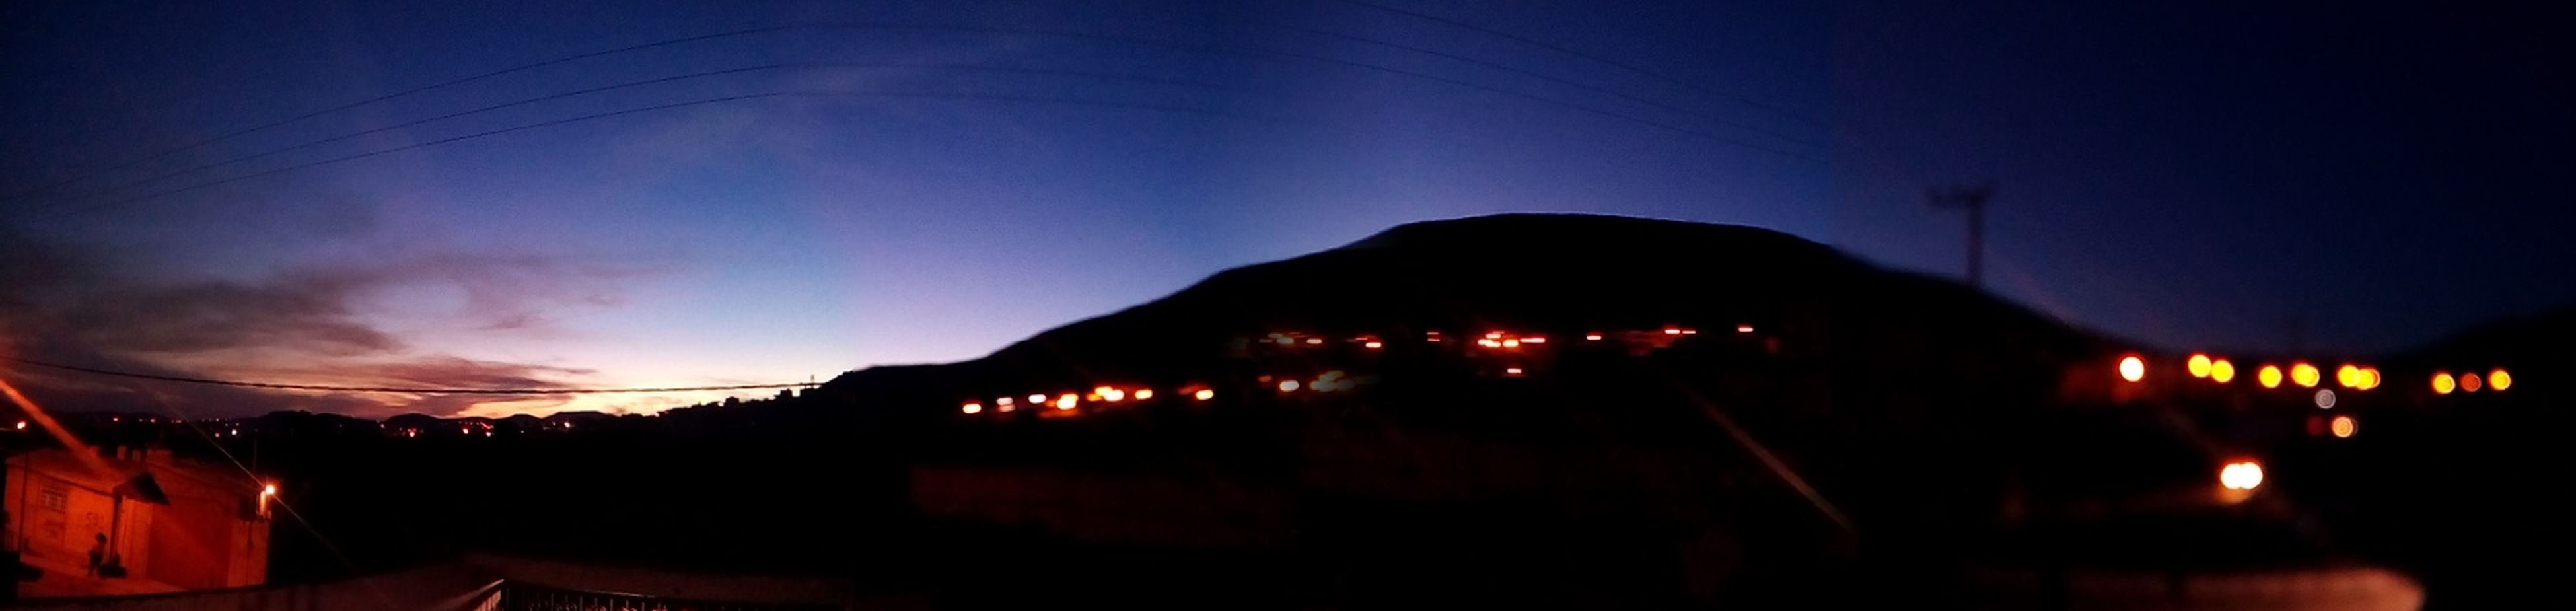 illuminated, night, sky, lighting equipment, silhouette, dusk, electricity, dark, blue, outdoors, light - natural phenomenon, mountain, copy space, landscape, glowing, scenics, nature, street light, no people, long exposure